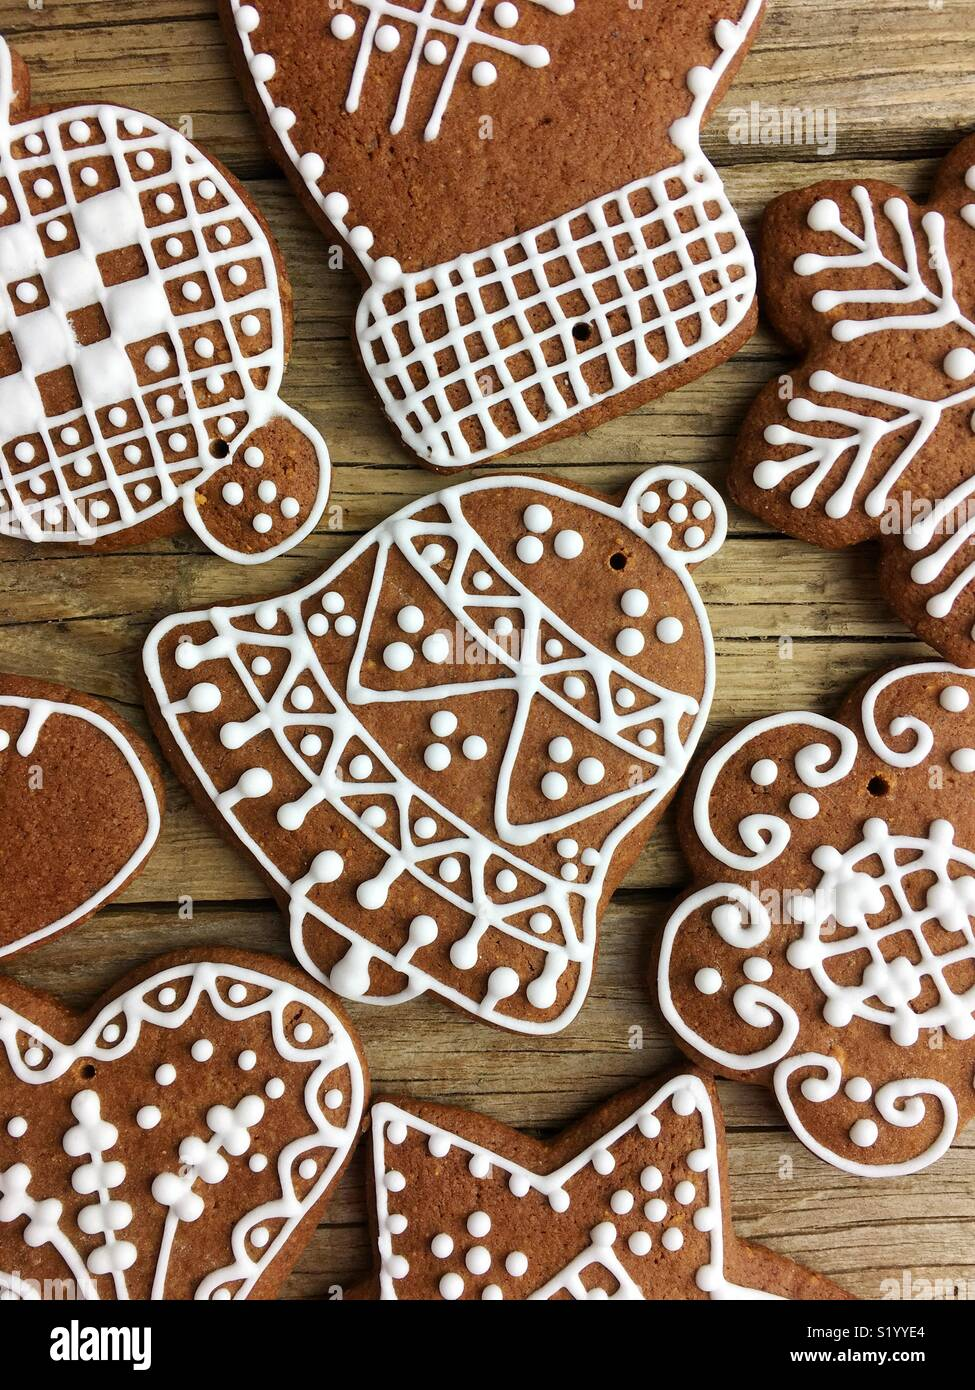 Full screen of Christmas gingerbread cookies on a wooden table - Stock Image